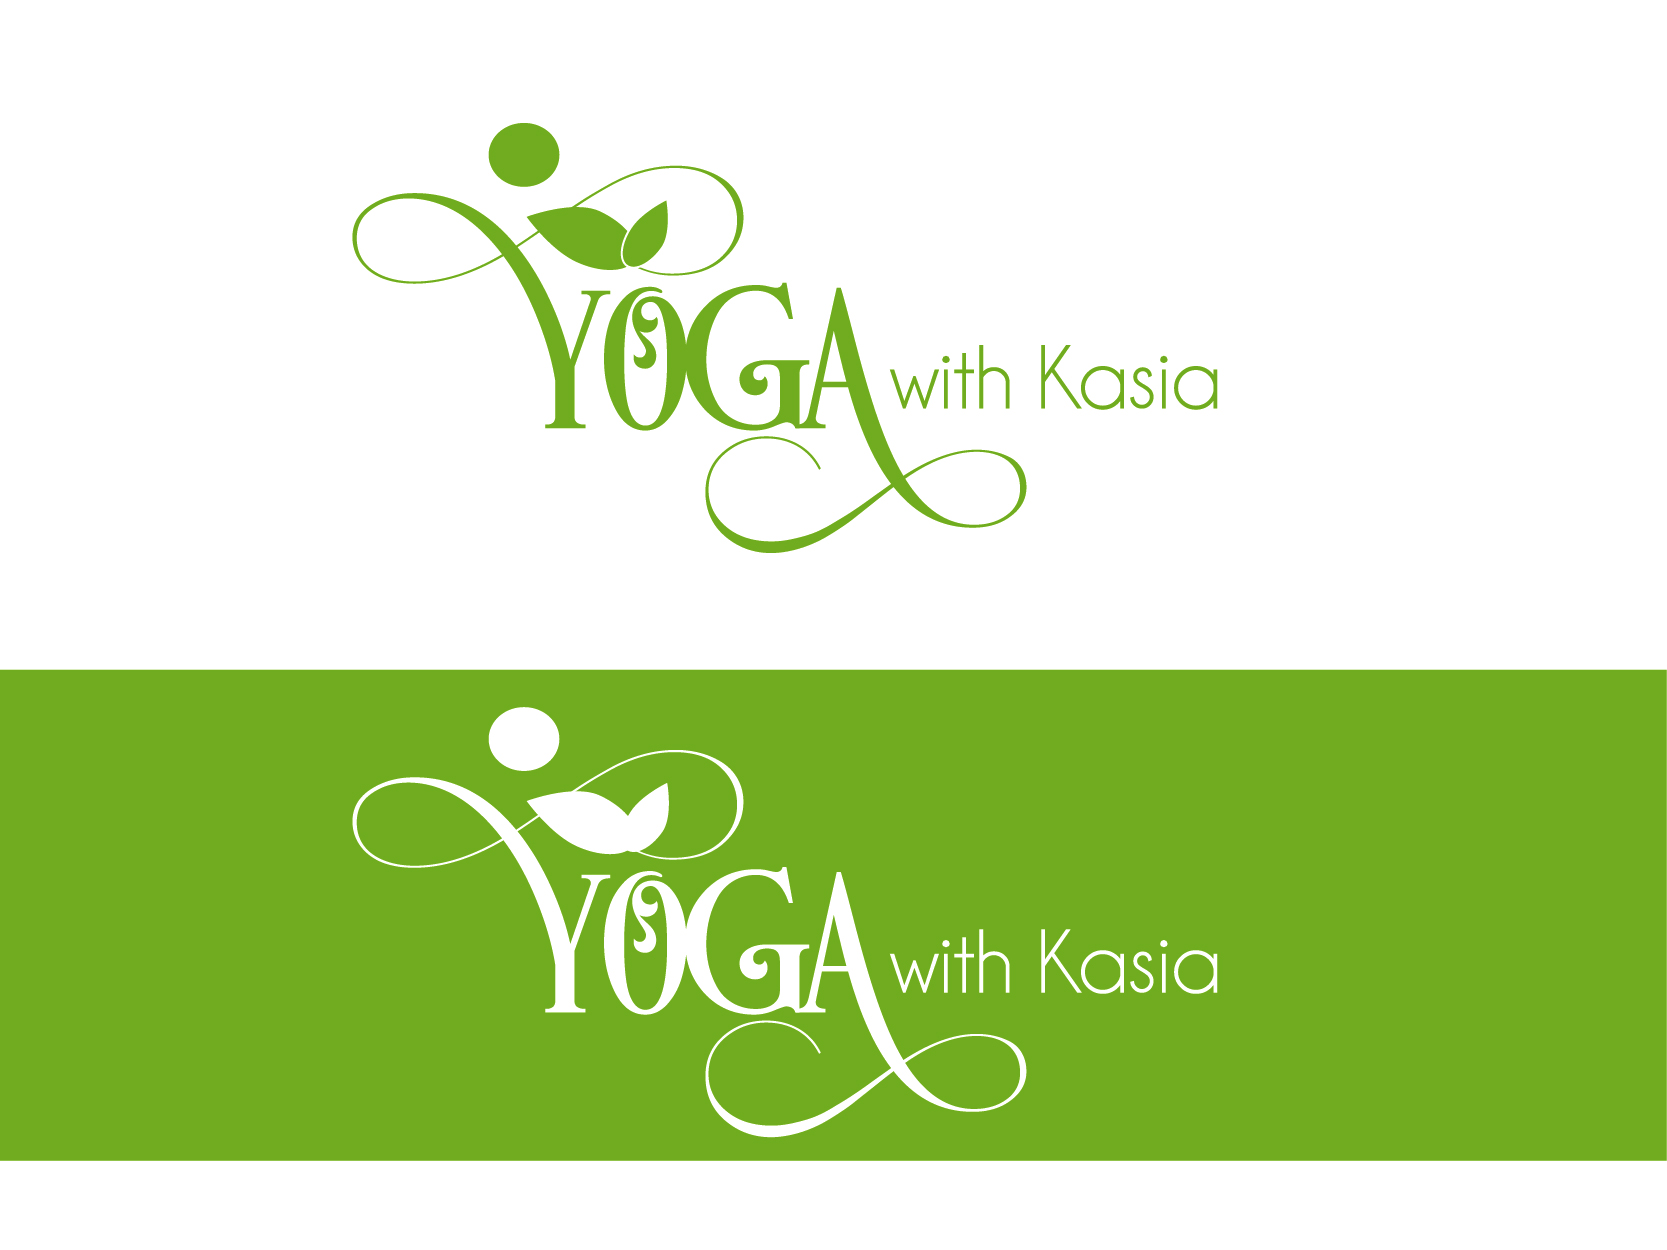 Logo Design by VENTSISLAV KOVACHEV - Entry No. 53 in the Logo Design Contest Artistic Logo Design for Yoga with Kasia.